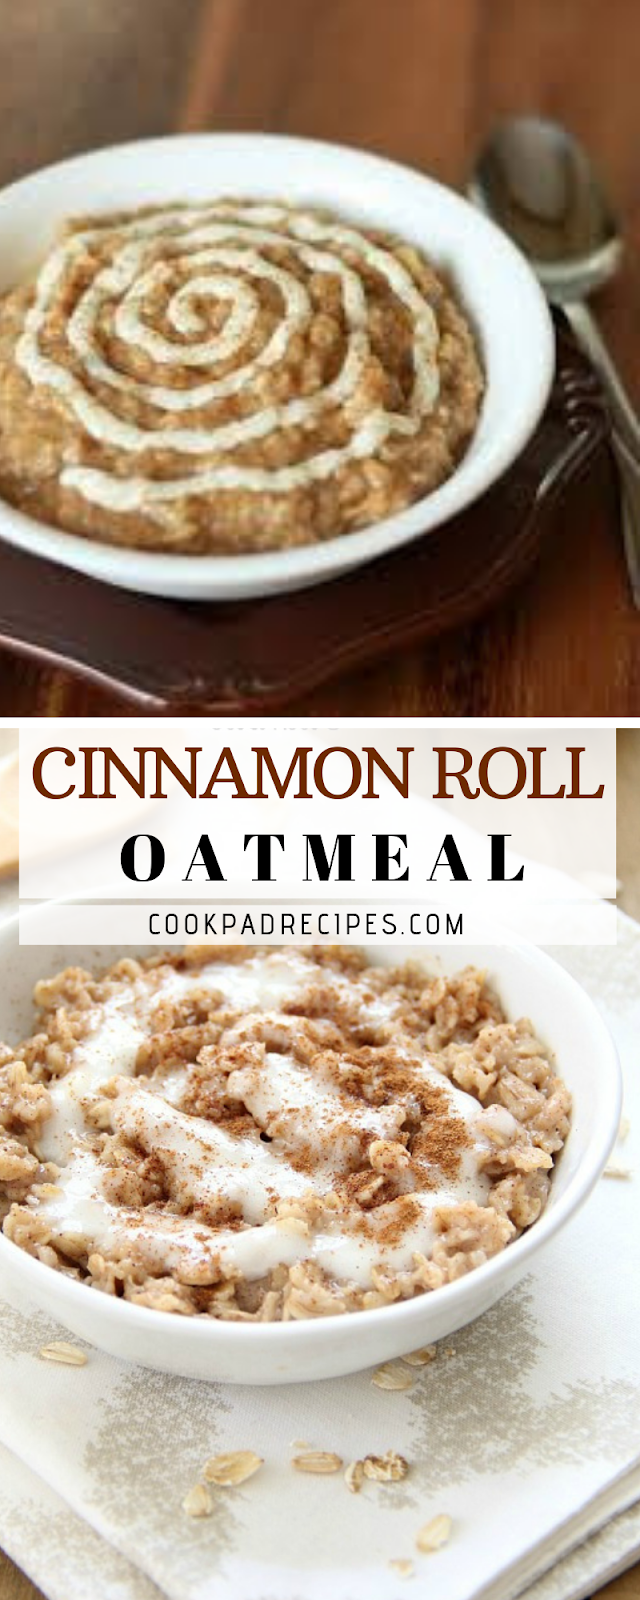 Cinnamon Roll Oatmeal